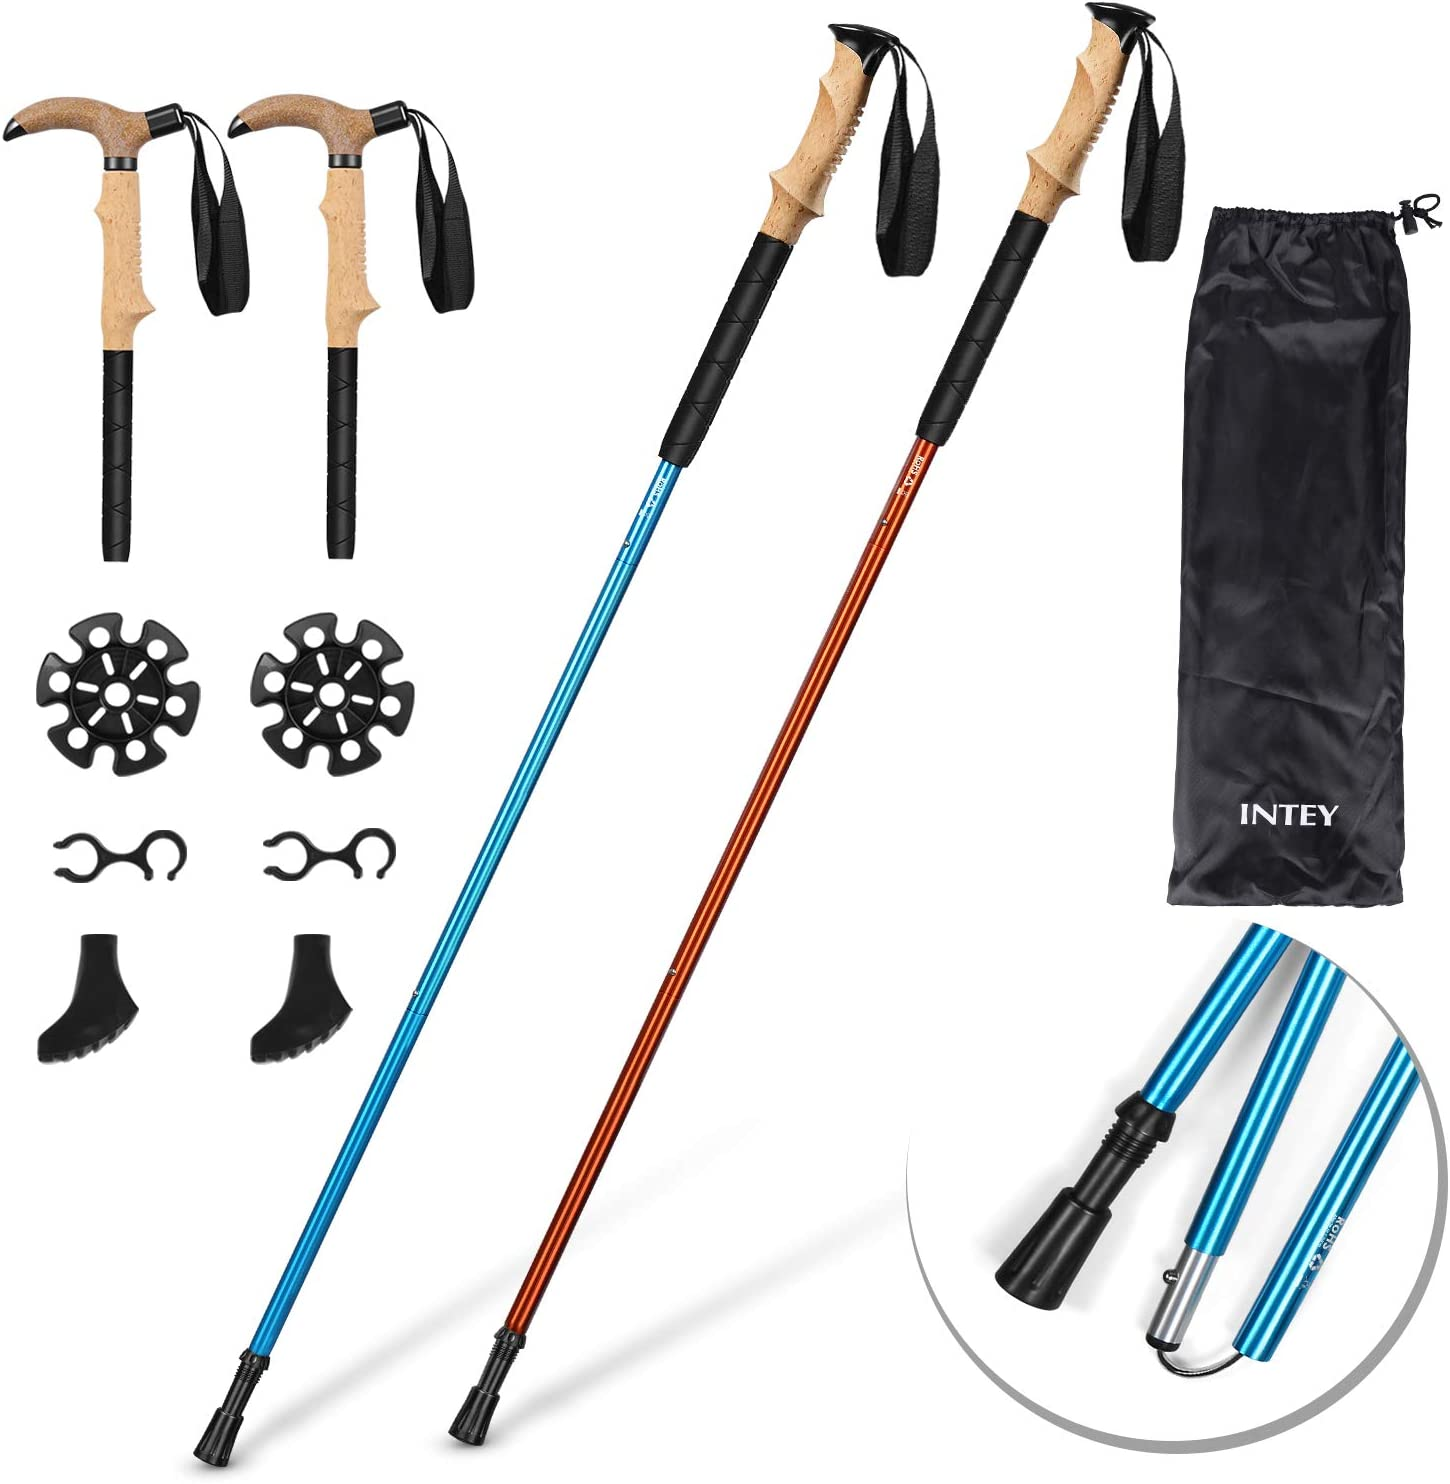 INTEY Trekking Poles, 2 Pack Collapsible Hiking Walking Sticks, Anti Shock, Lightweight Aluminum, Adjustable Strap, Push-Lock, Ergonomic Grip